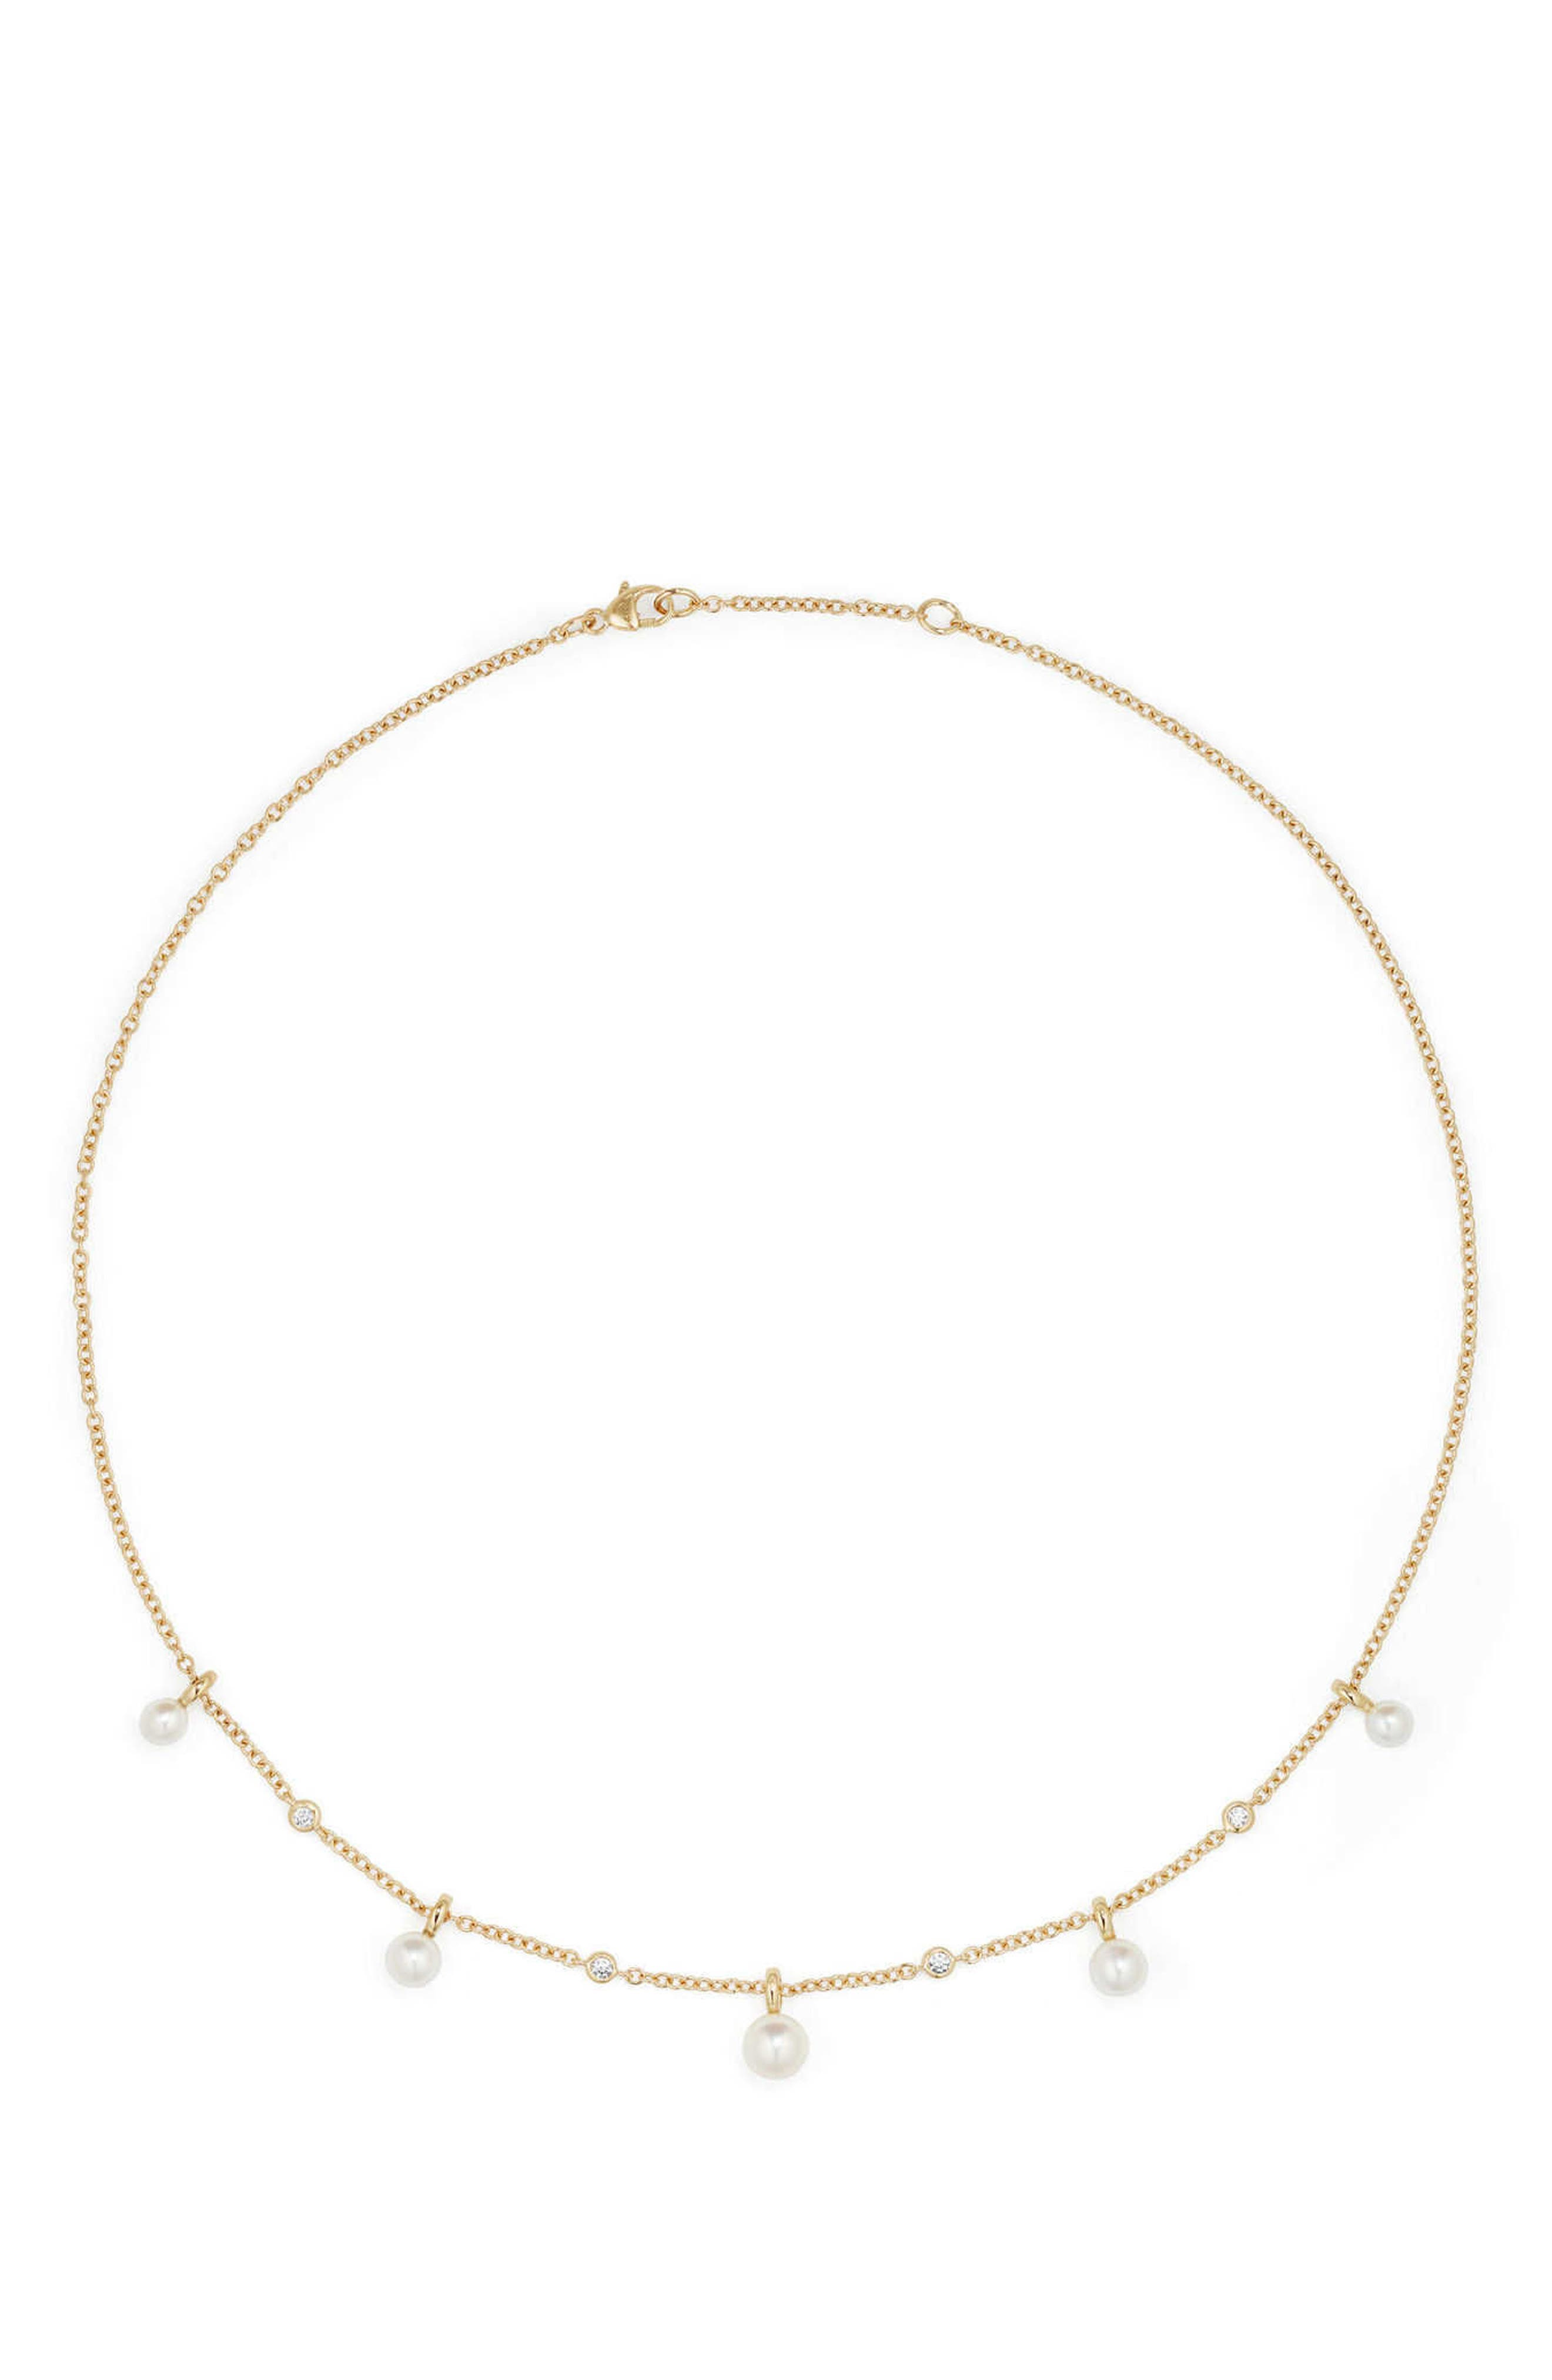 Petite Perle Pearl & Diamond Fringe Necklace in 18k Gold,                             Main thumbnail 1, color,                             Gold/ Diamond/ Pearl